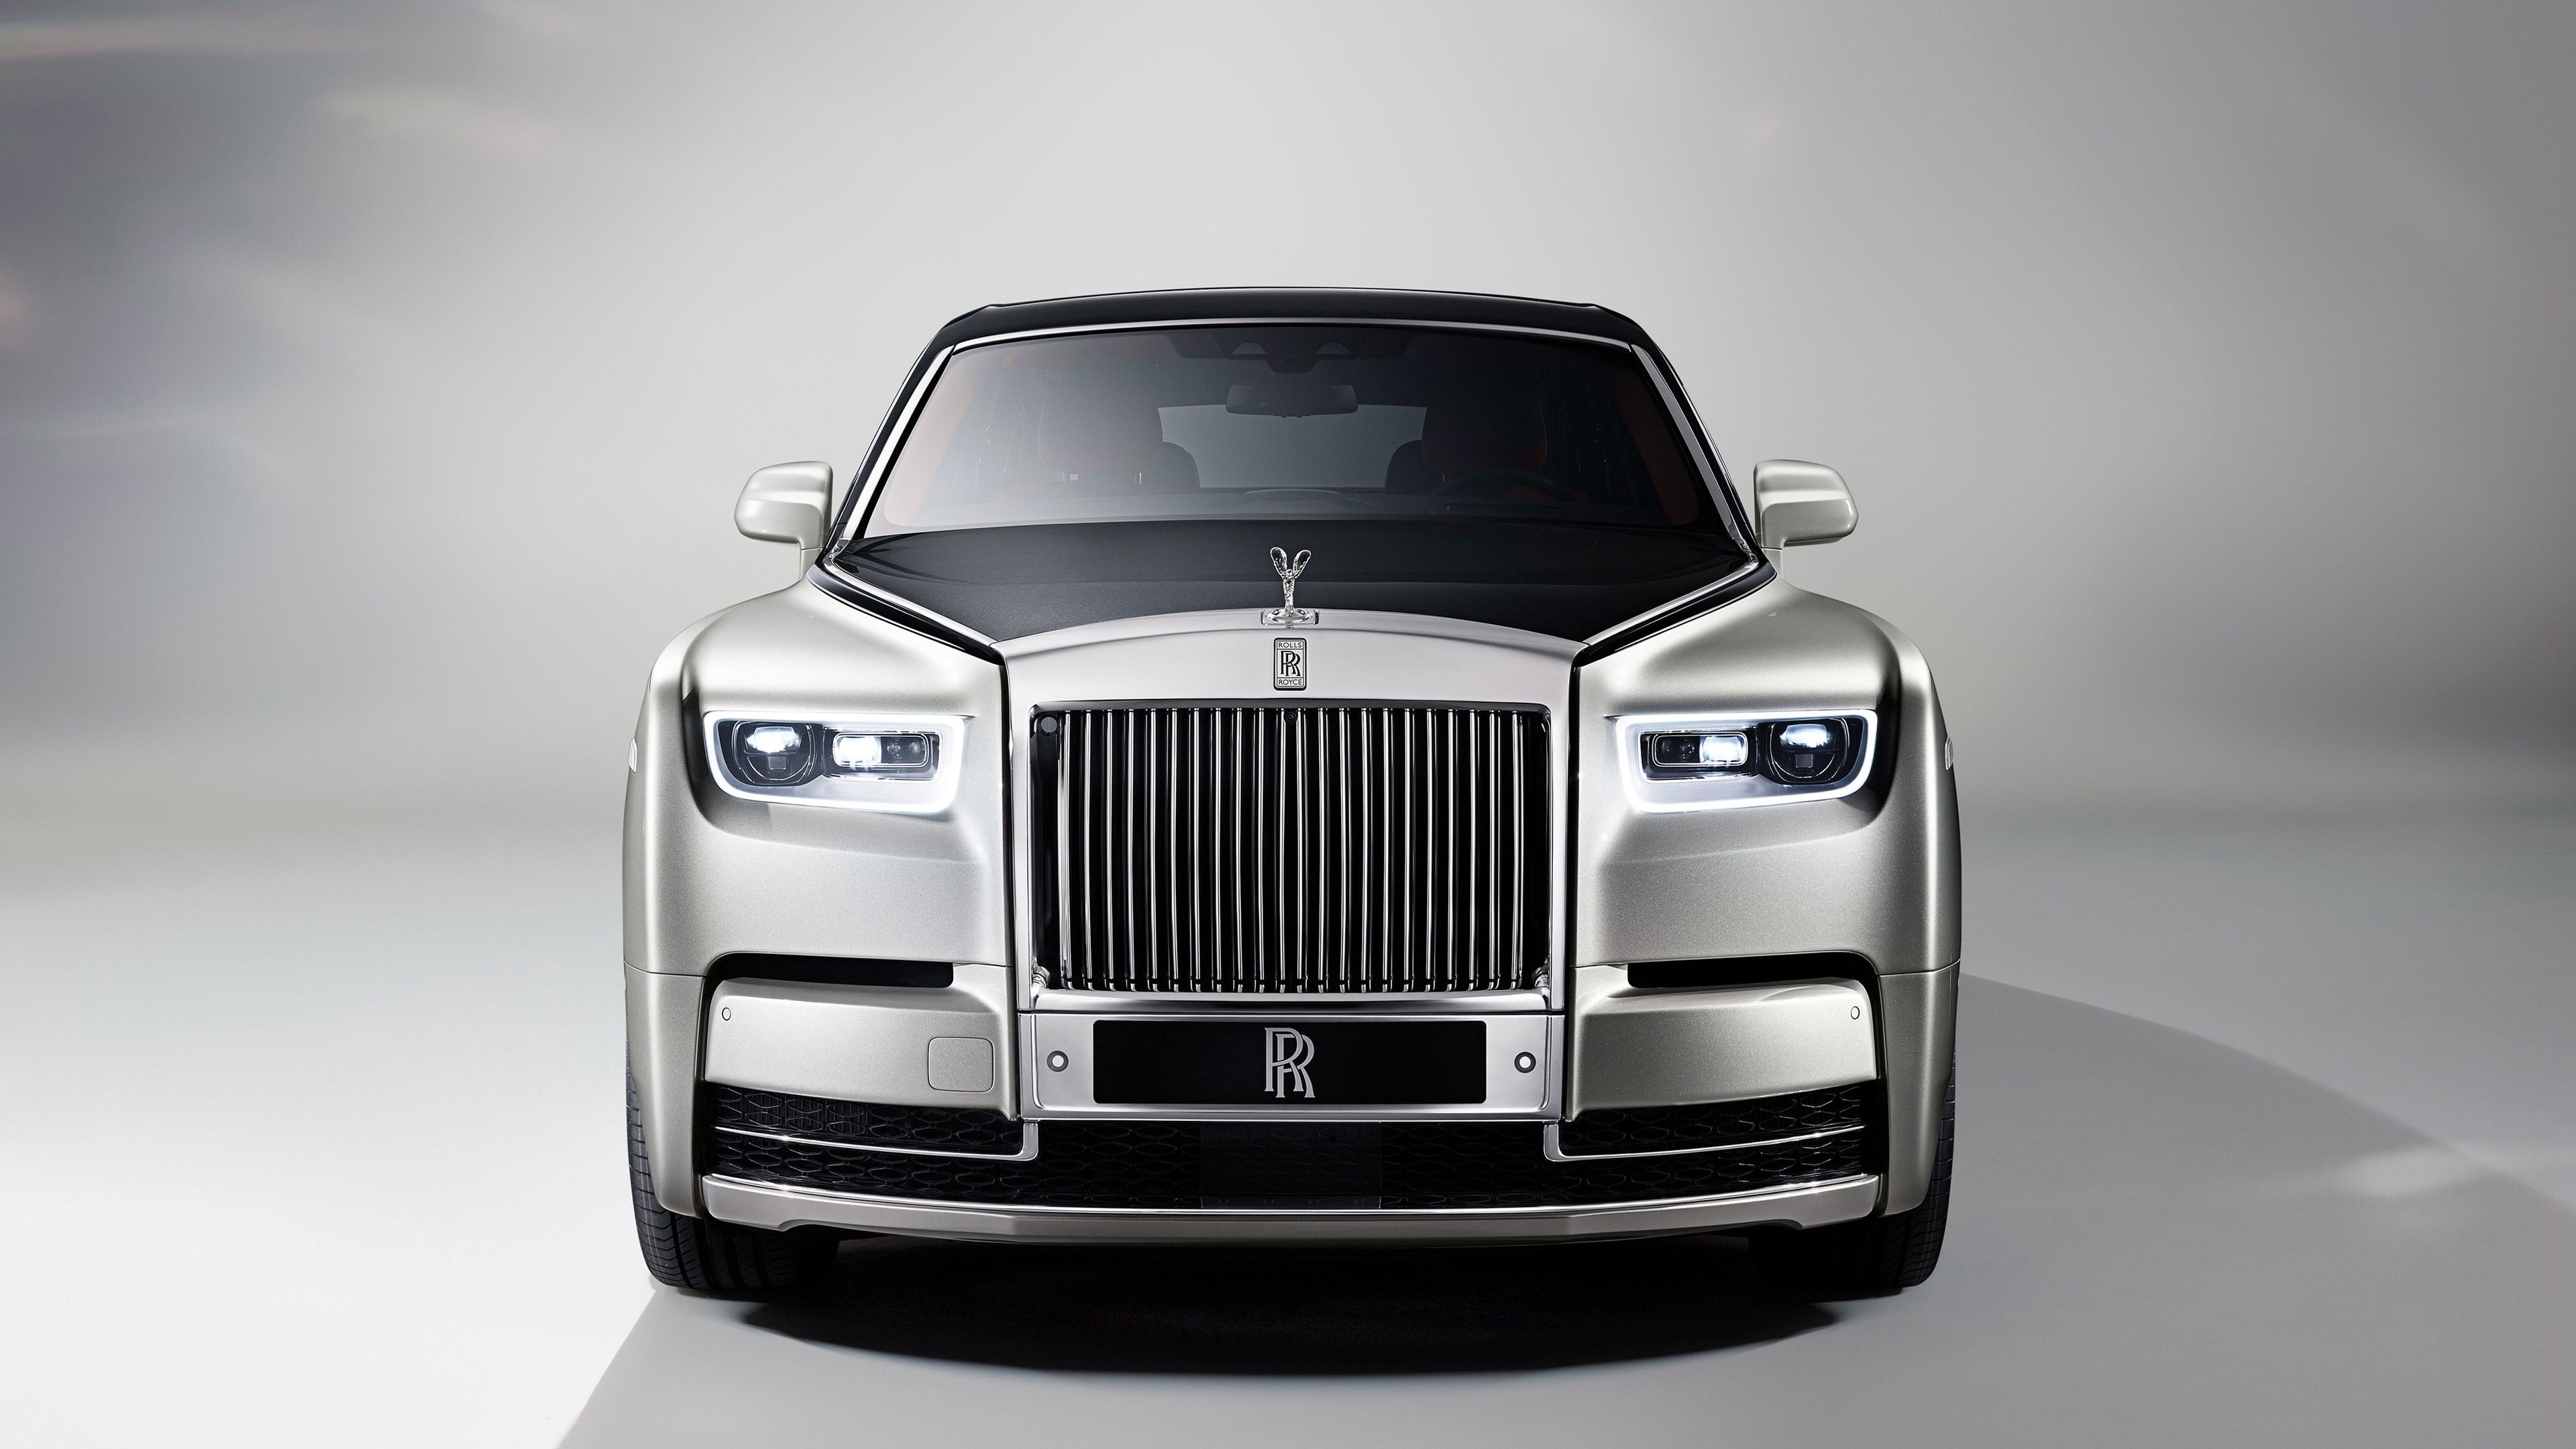 Rolls Royce Phantom 2017 rolls royce wallpapers, rolls royce phantom wallpapers,…